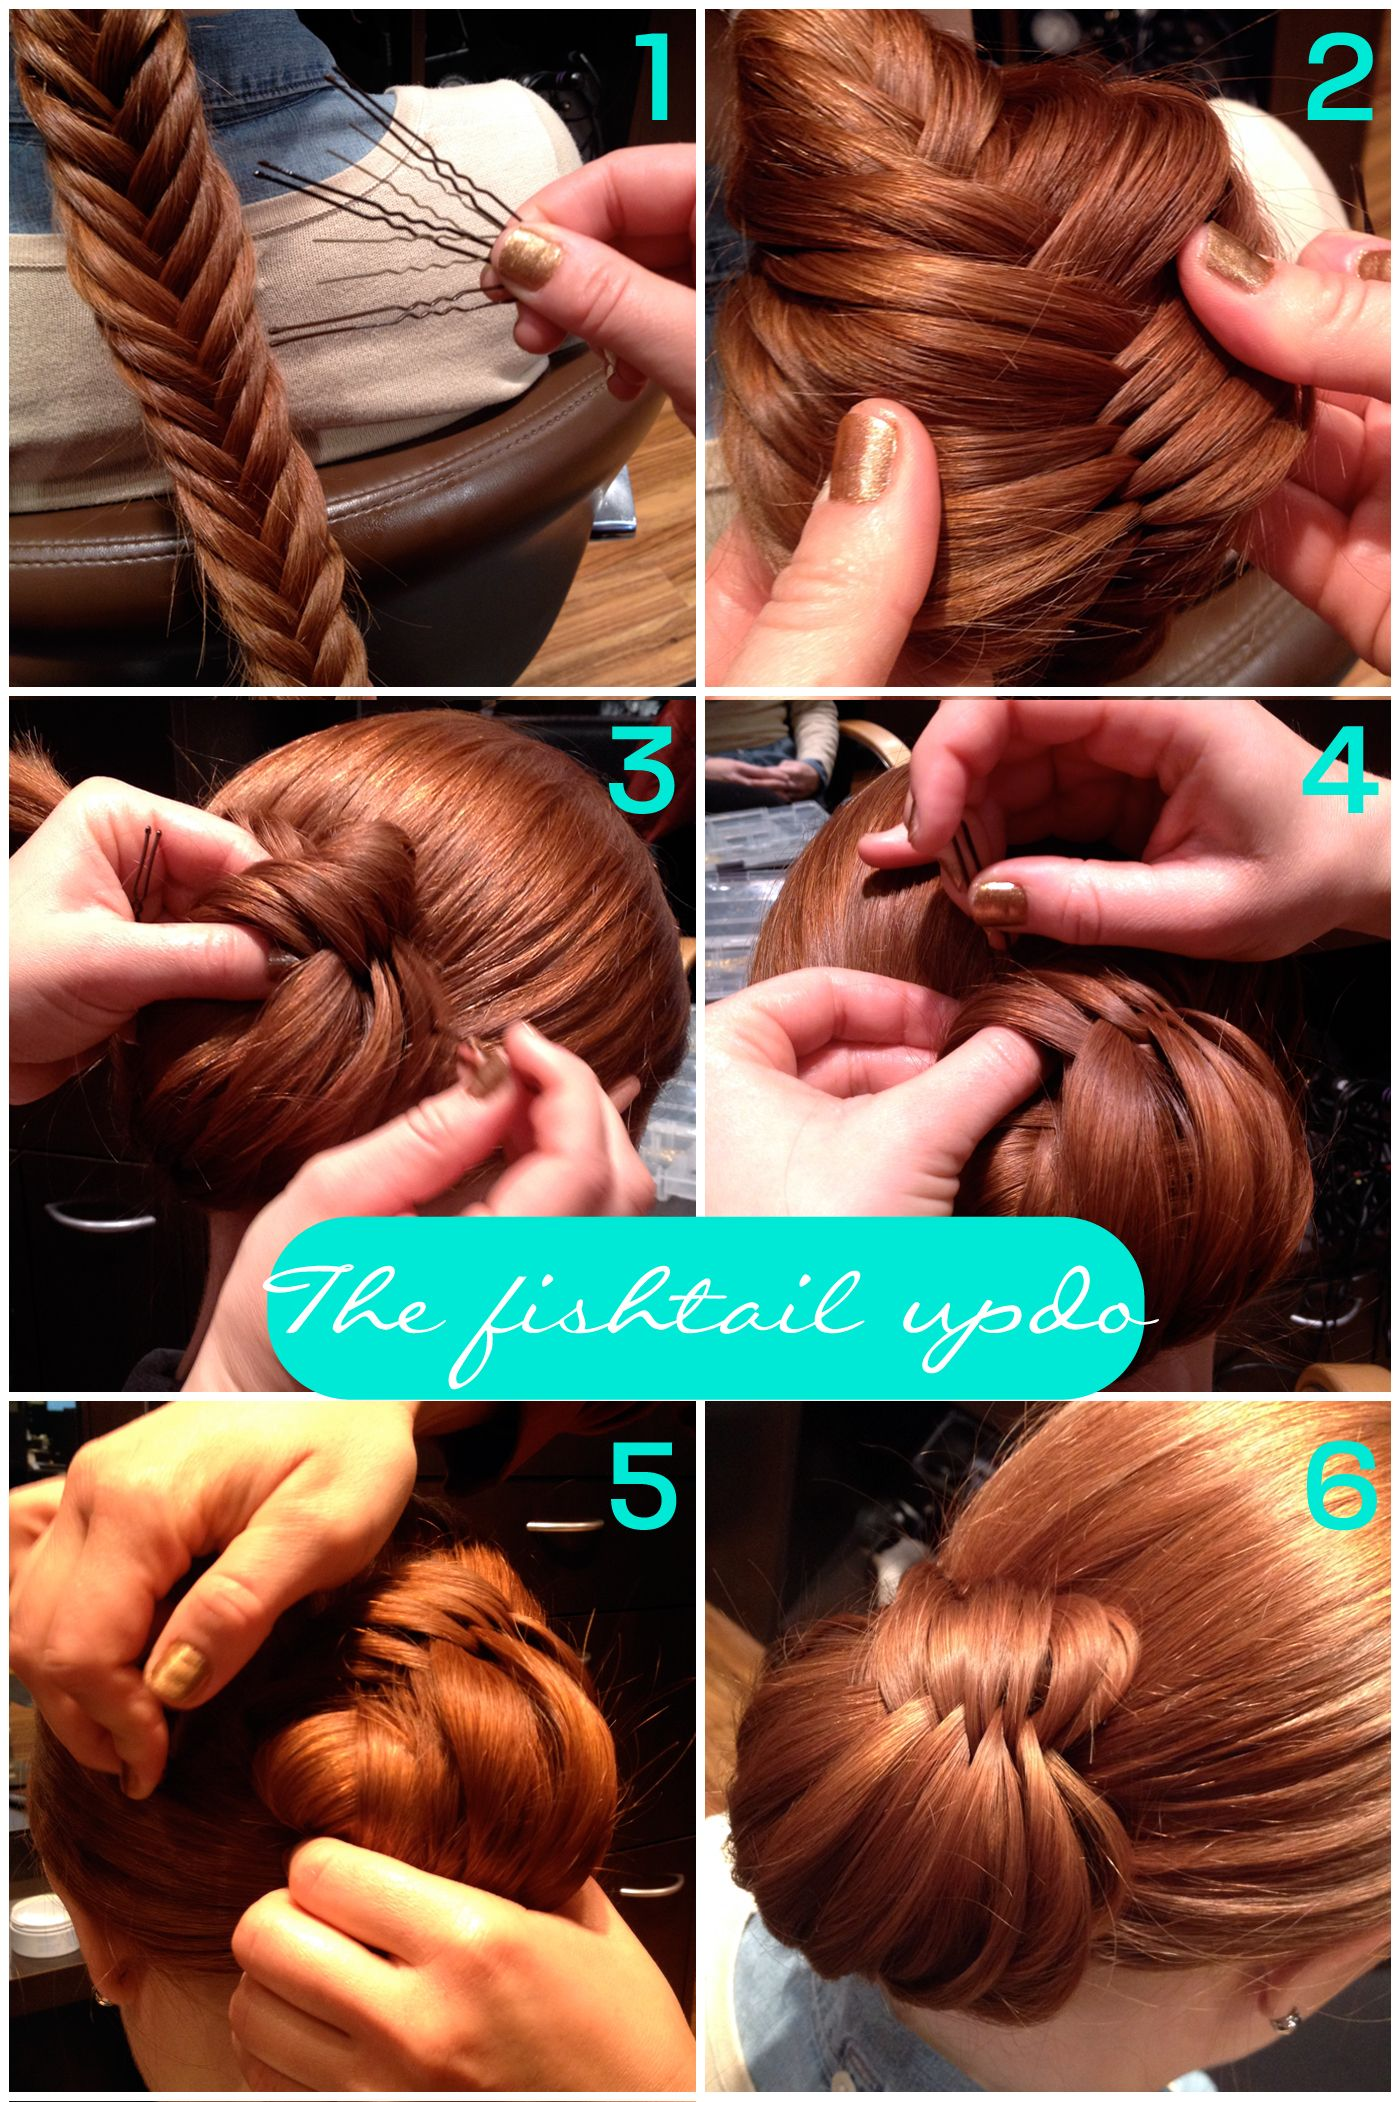 How to braidtoupdo so different and so pretty makes me want